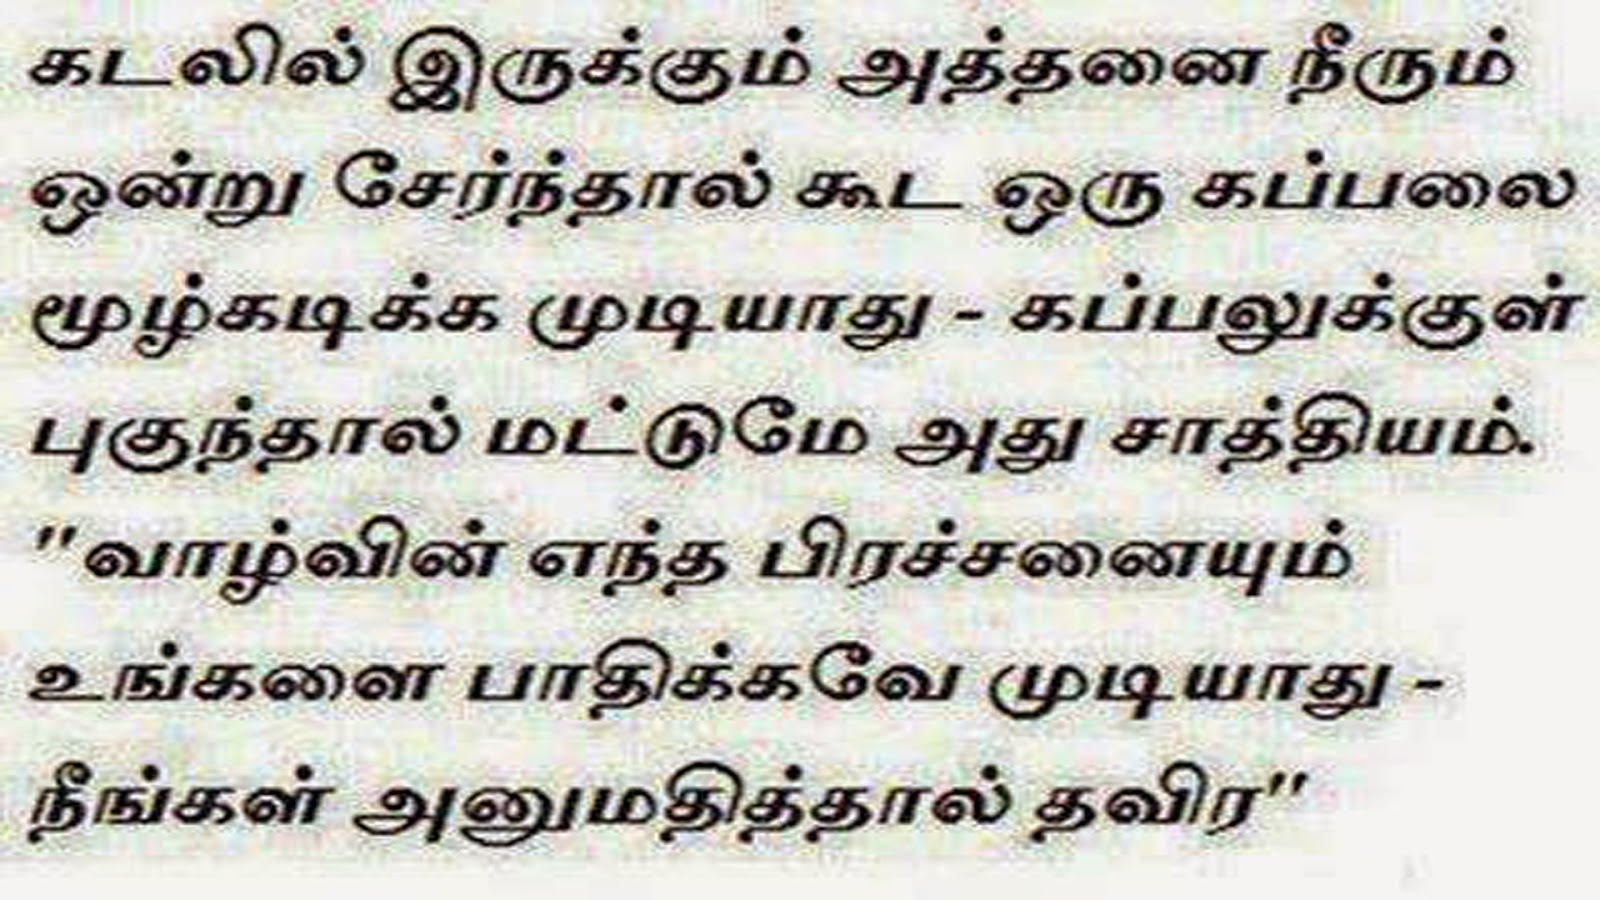 Husband Wisdom Thoughts tamil Nice Quotes Nice Quotes Wisdom Thoughts tamil